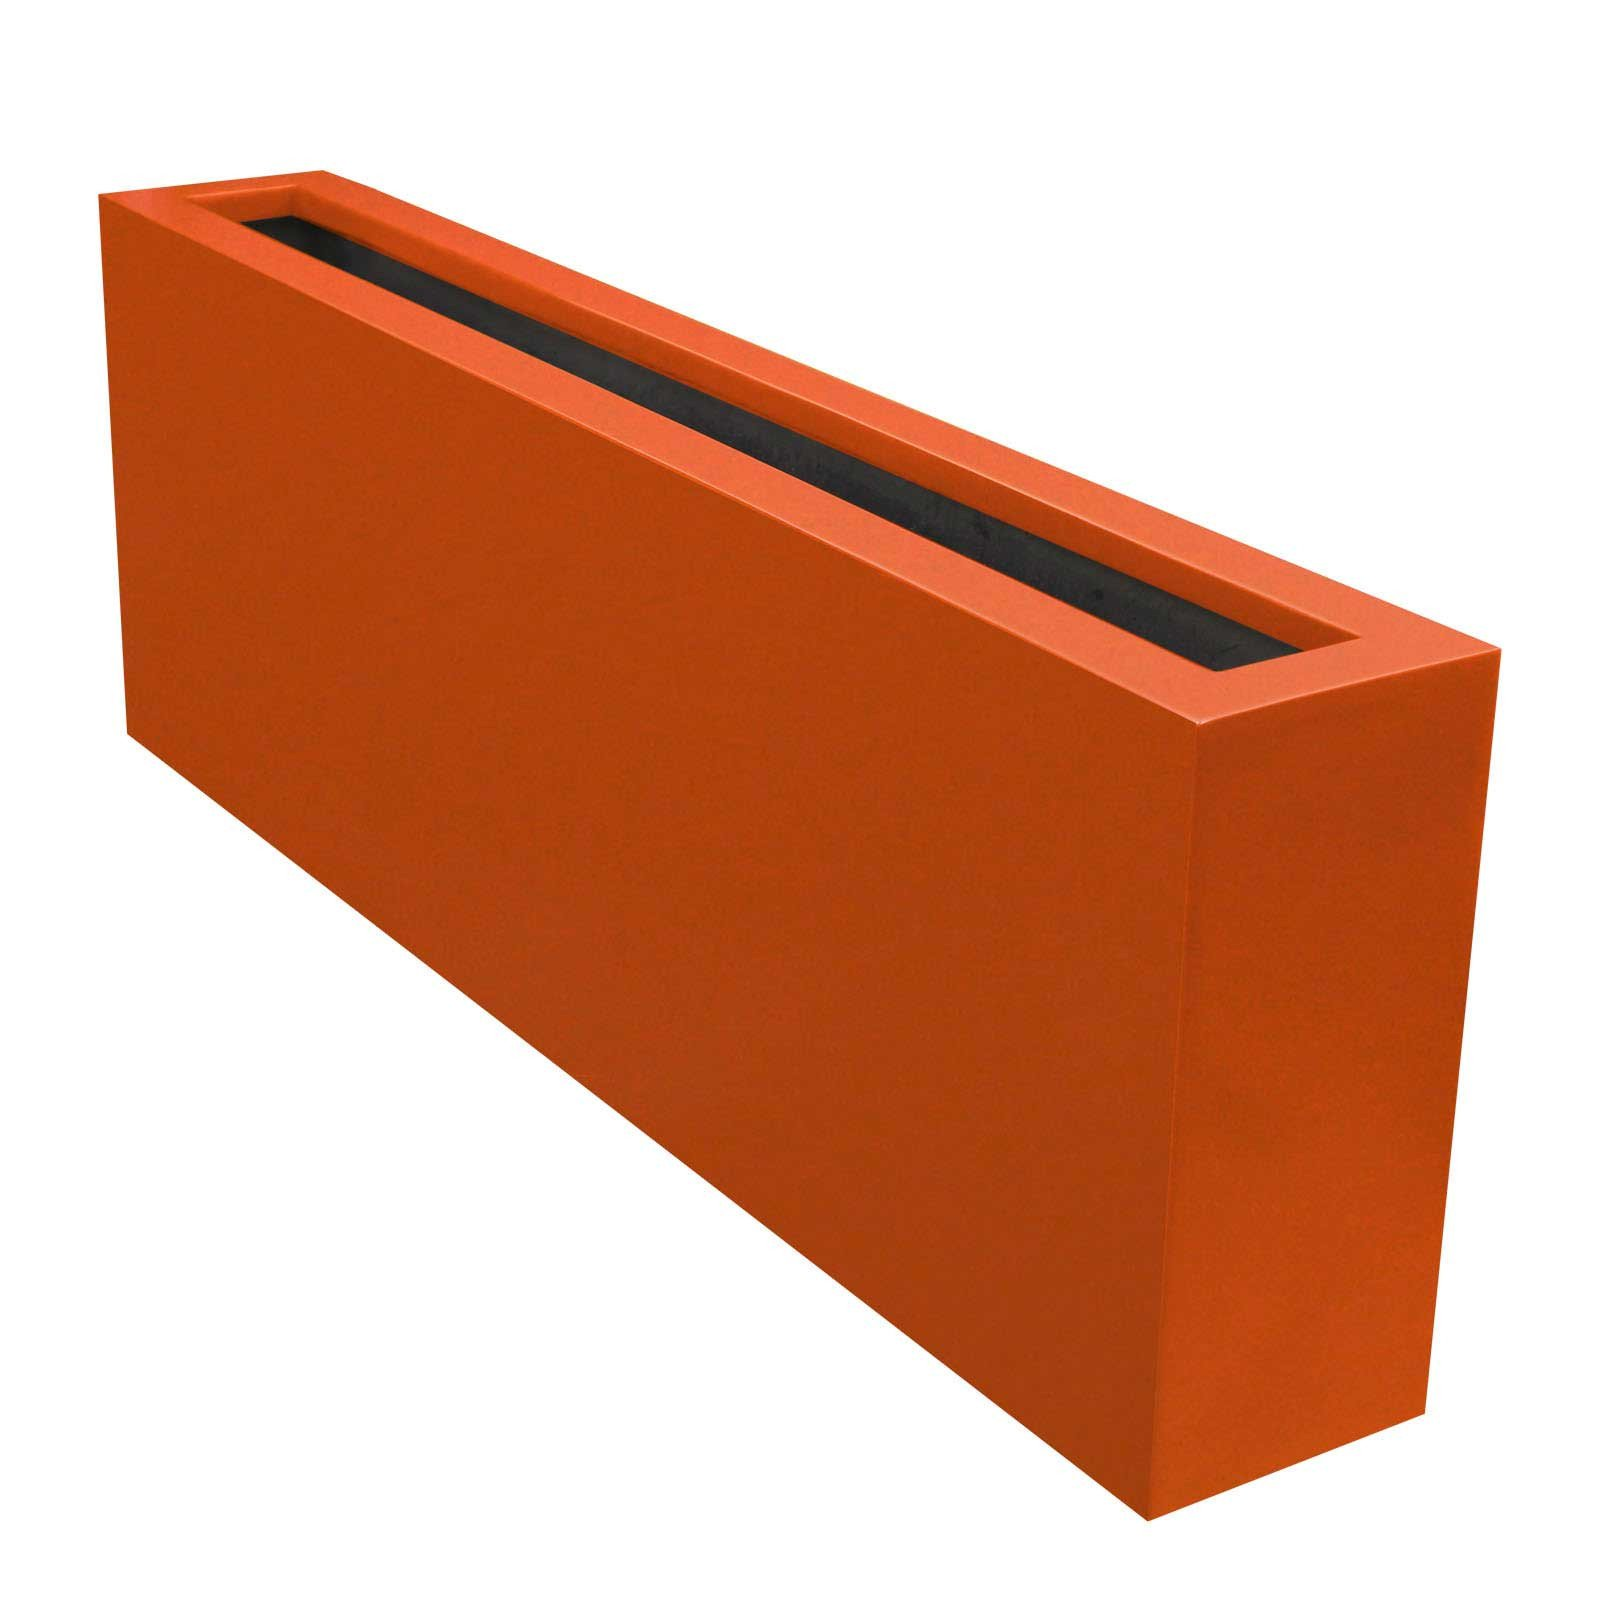 Contemporary Planter Box - Fiberglass - 54'L x 8'W x 18'H